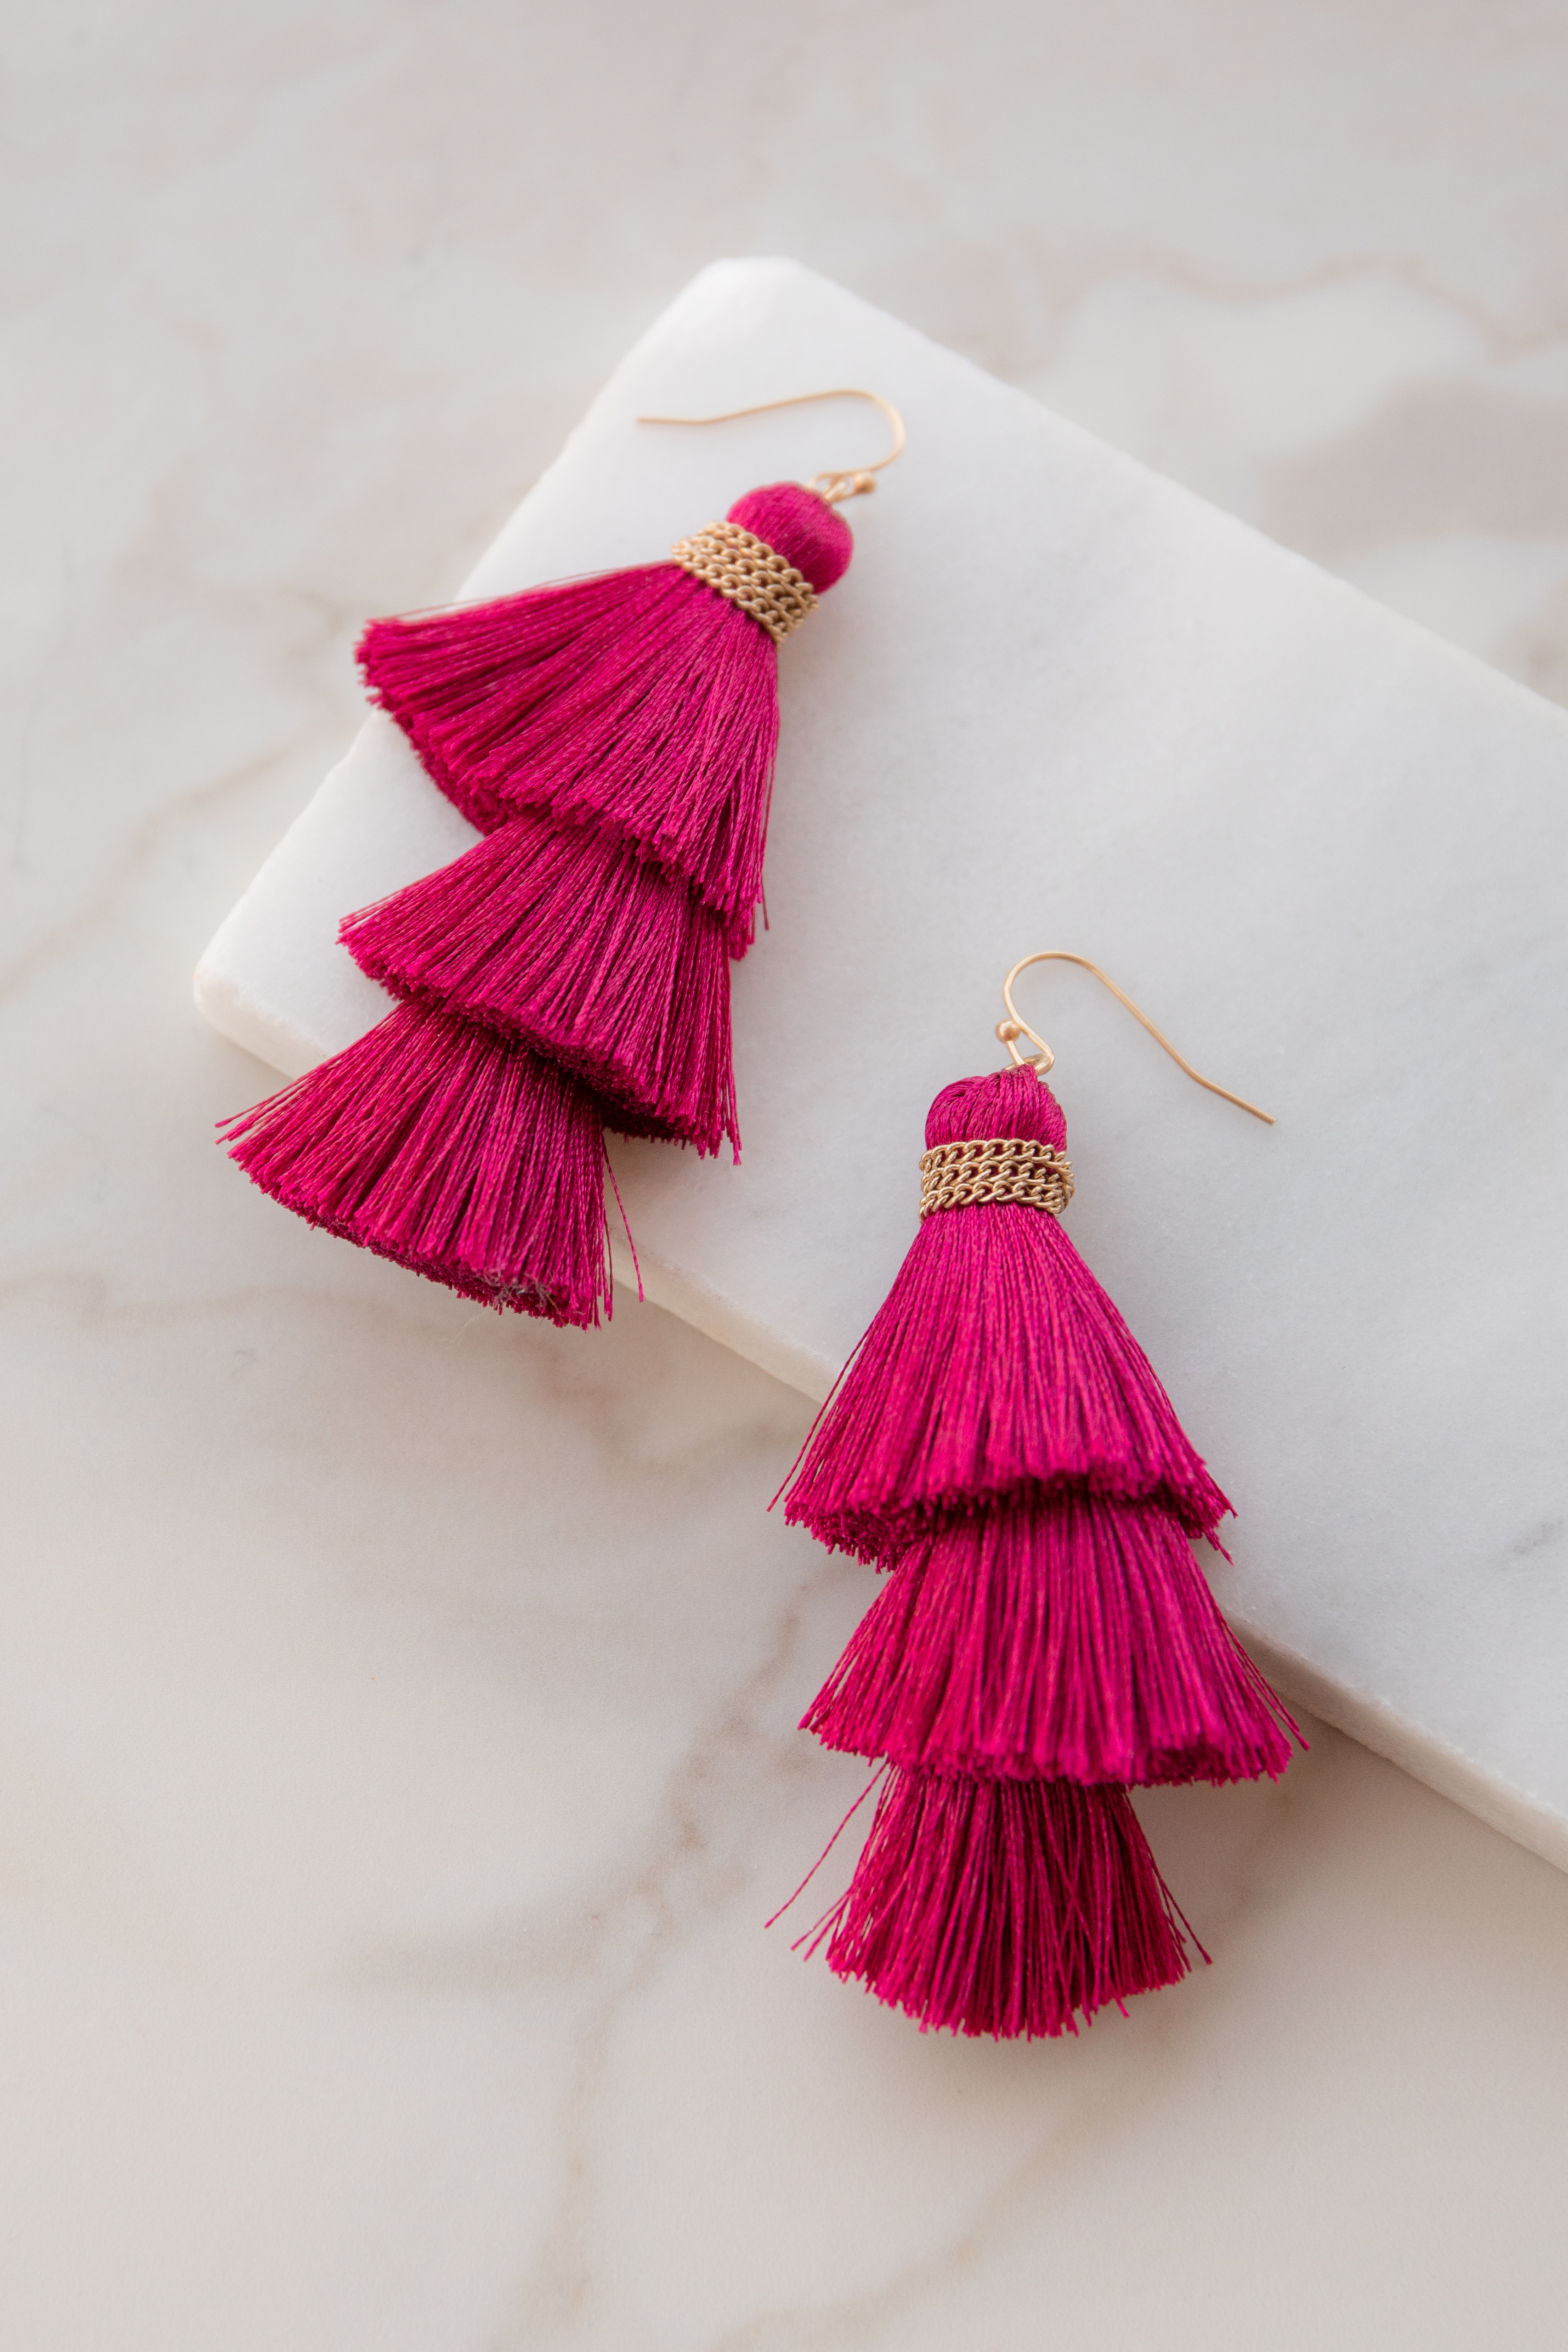 Wine Tiered Tassel Thread Earrings with Gold Details